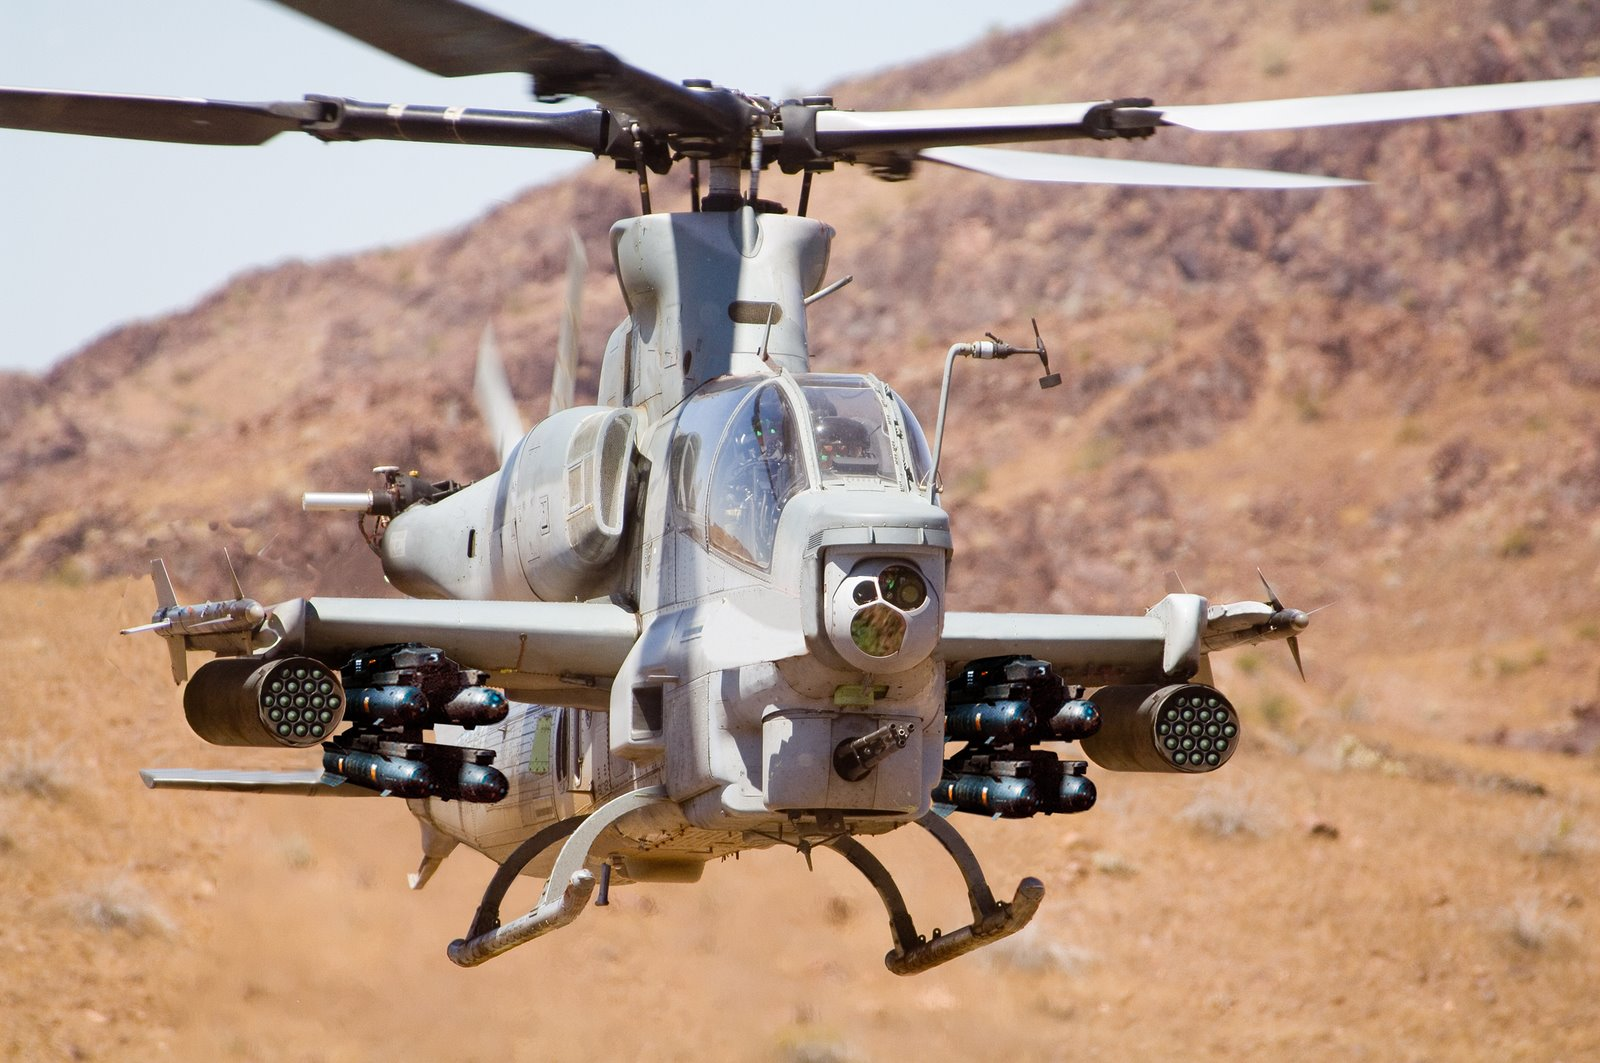 Cool Jet Airlines: AH-1 Cobra Helicopter